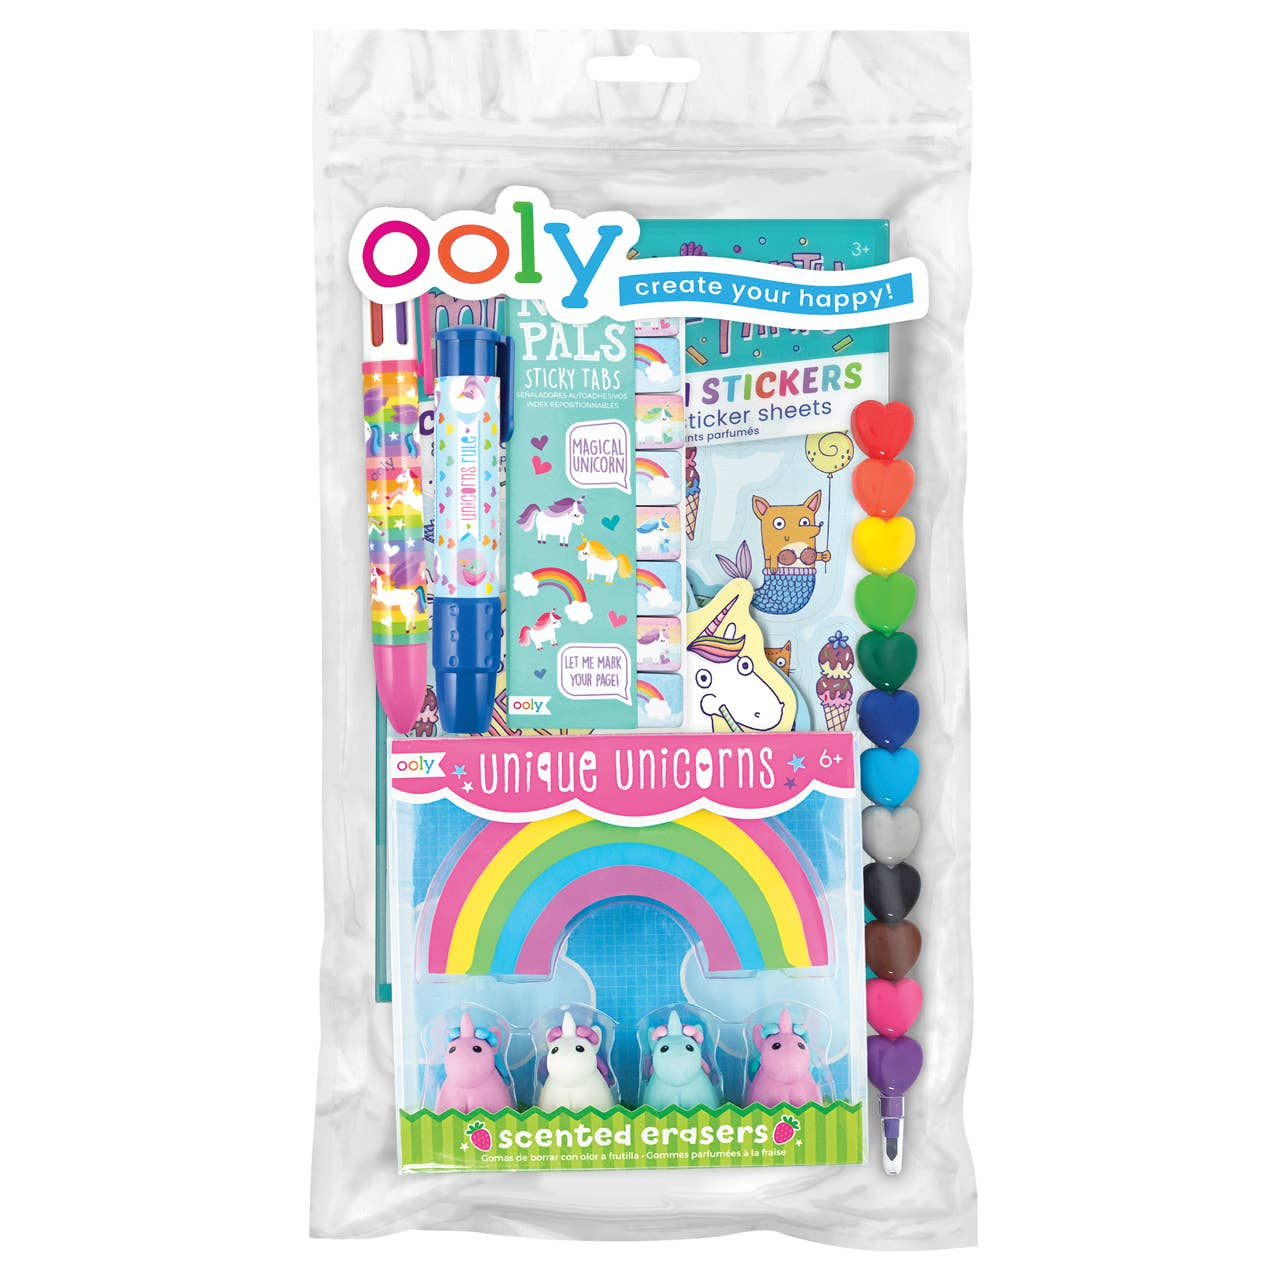 Oh My! Unicorns and Mermaids Happy Pack